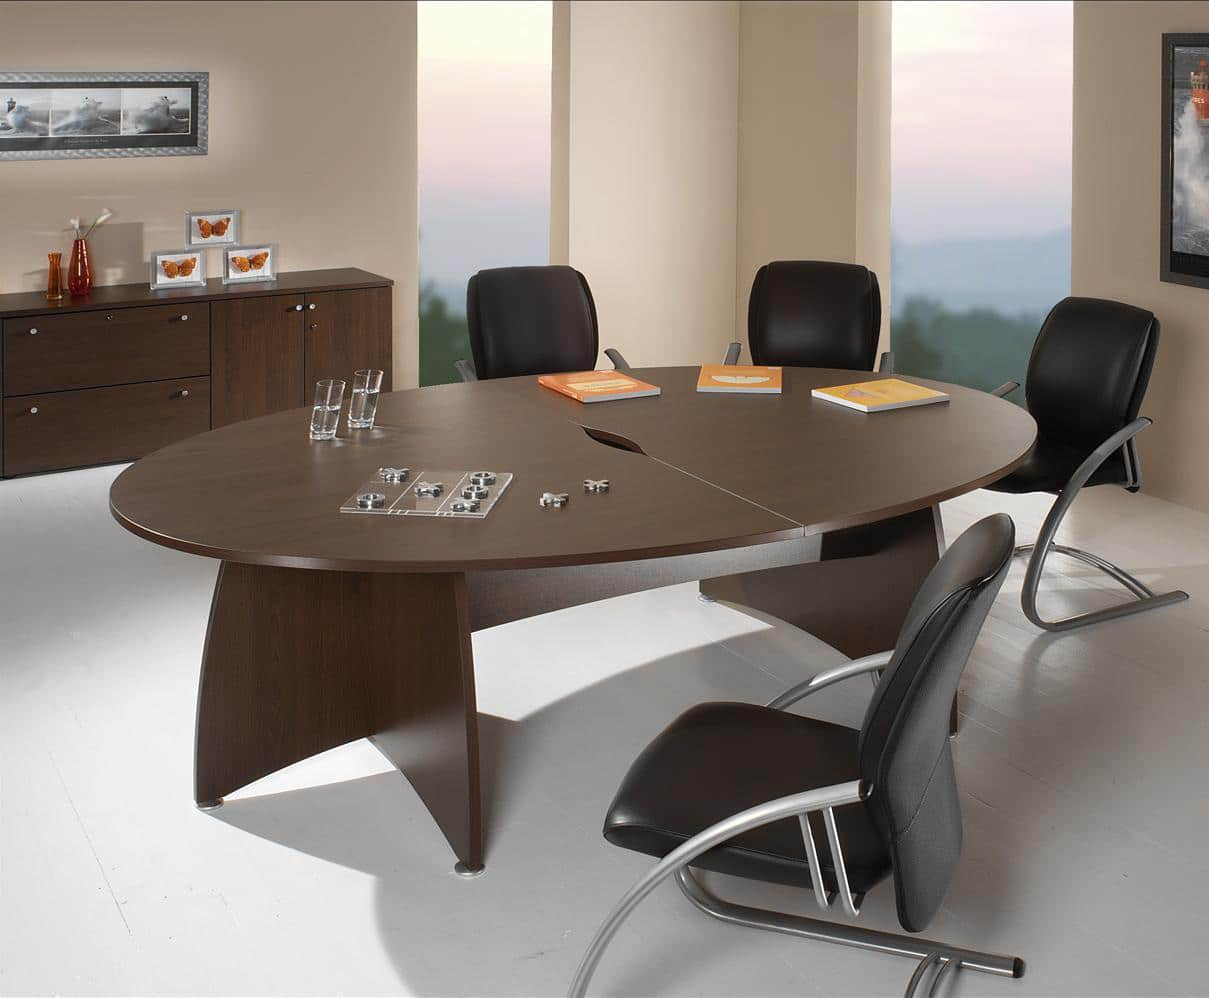 Table de reunion ovale elancia 2m mobilier bureau for Table bureau